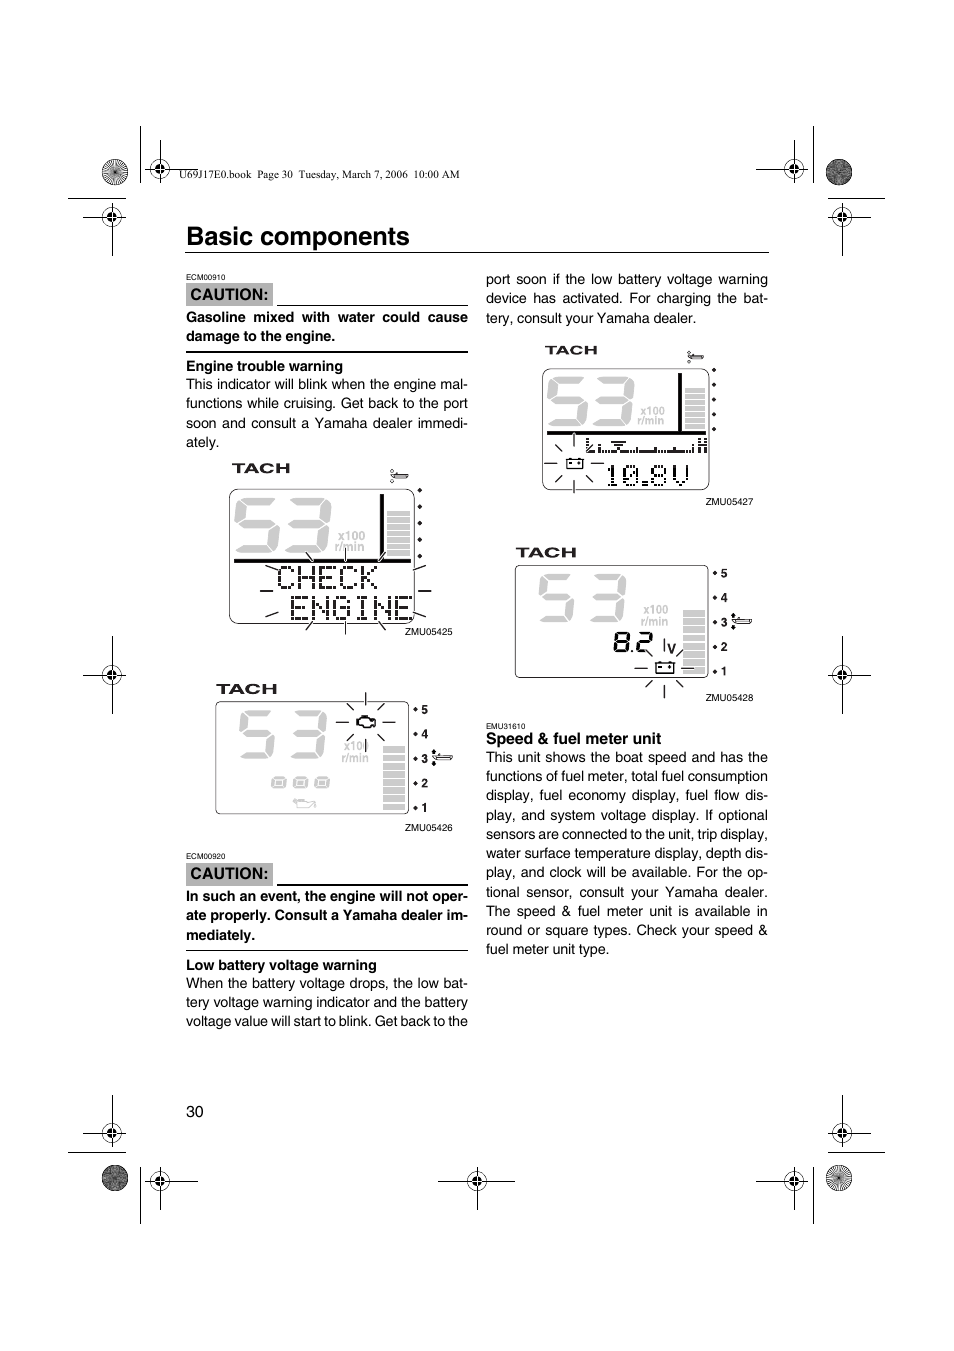 Speed Fuel Meter Unit Basic Components Yamaha Lf225 User Manual Battery Voltage Indicator Page 36 94